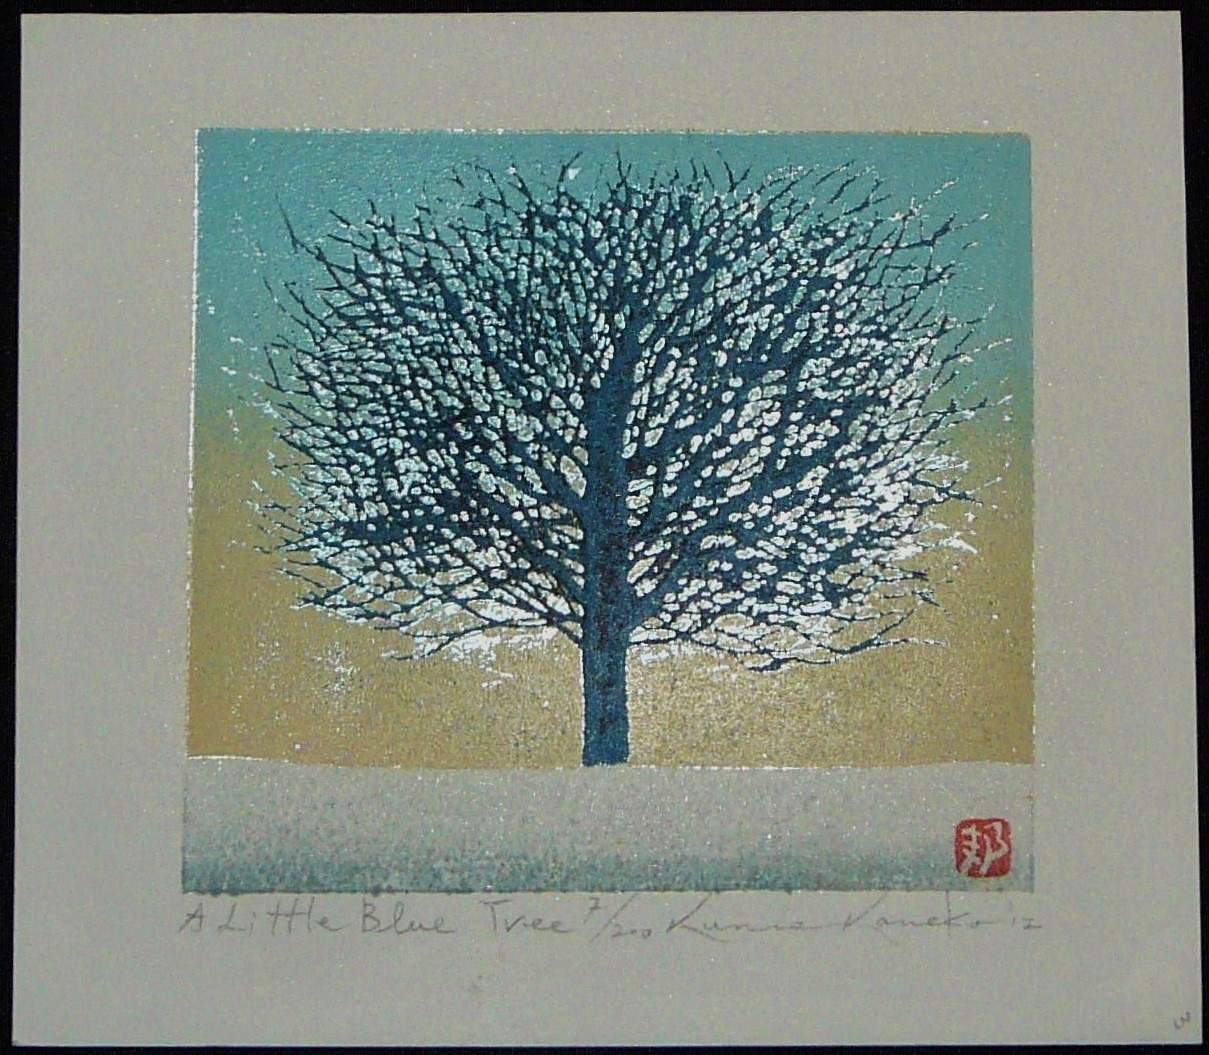 Kunio Kaneko: #P3932 A LITTLE BLUE TREE